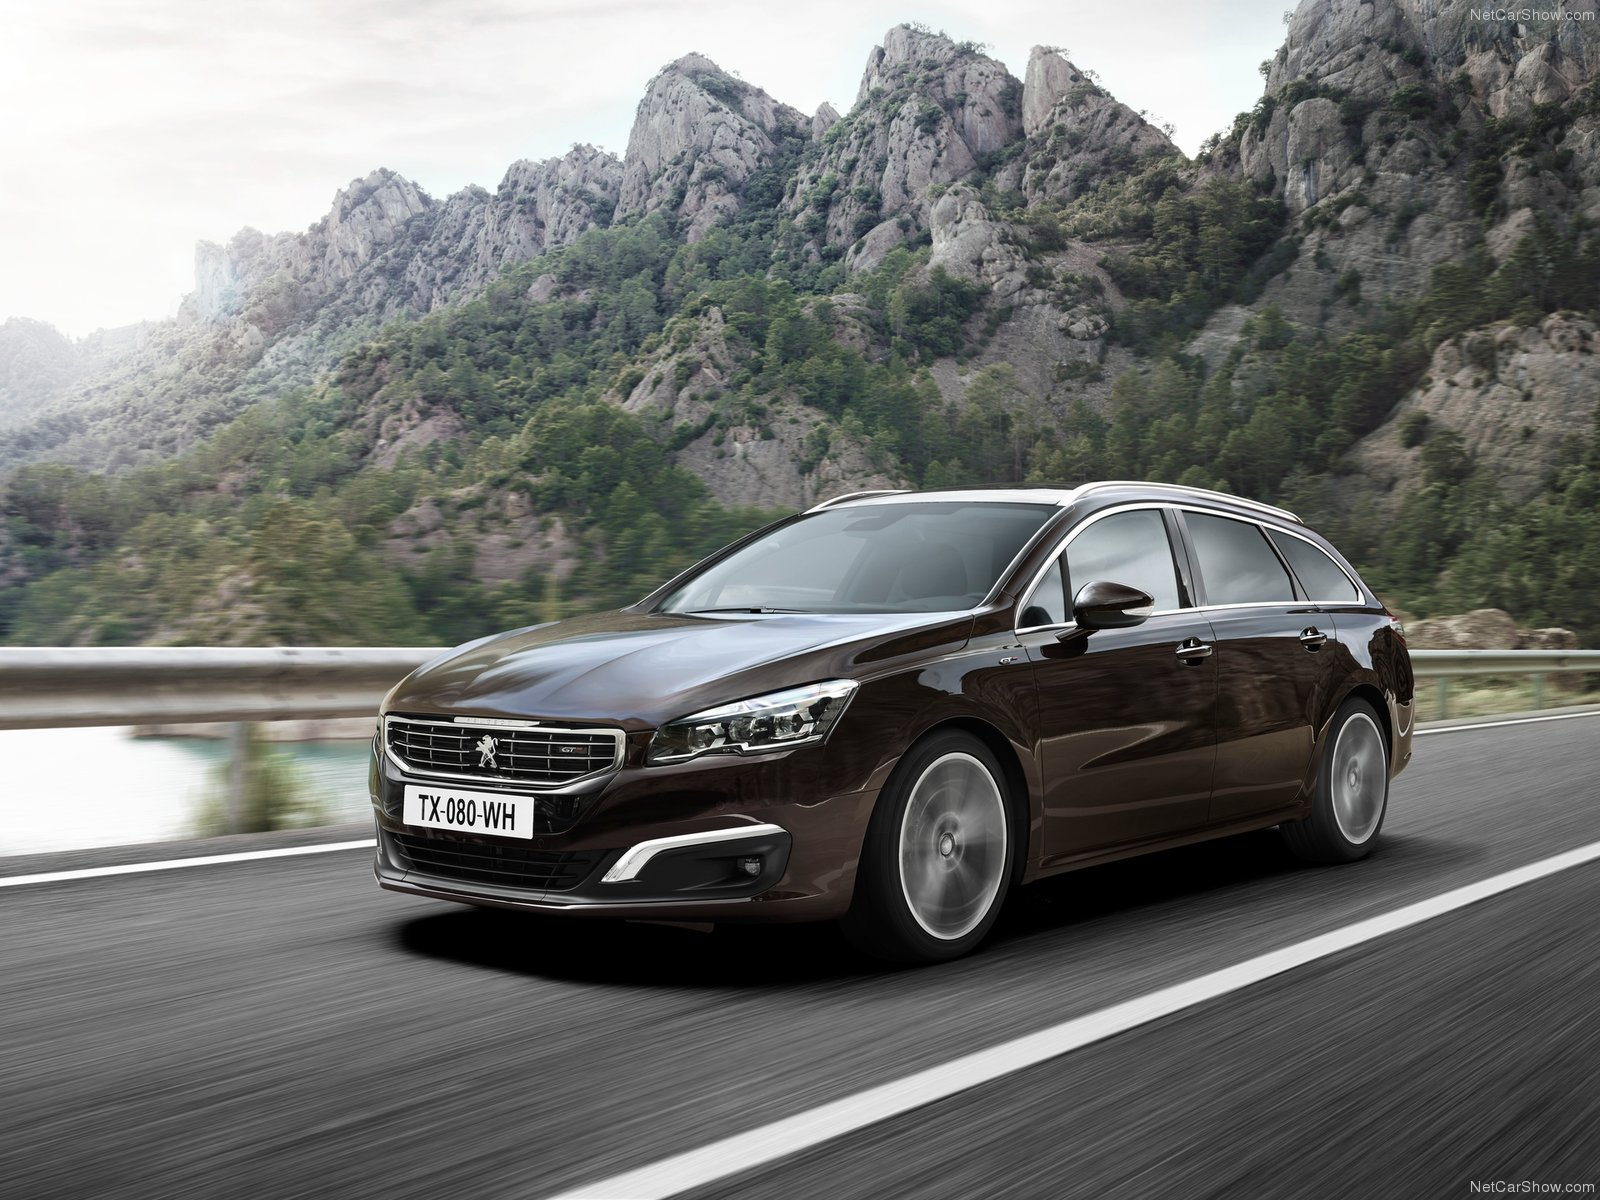 Peugeot 508 sw picture 129909 peugeot photo gallery for Photo peugeot 508